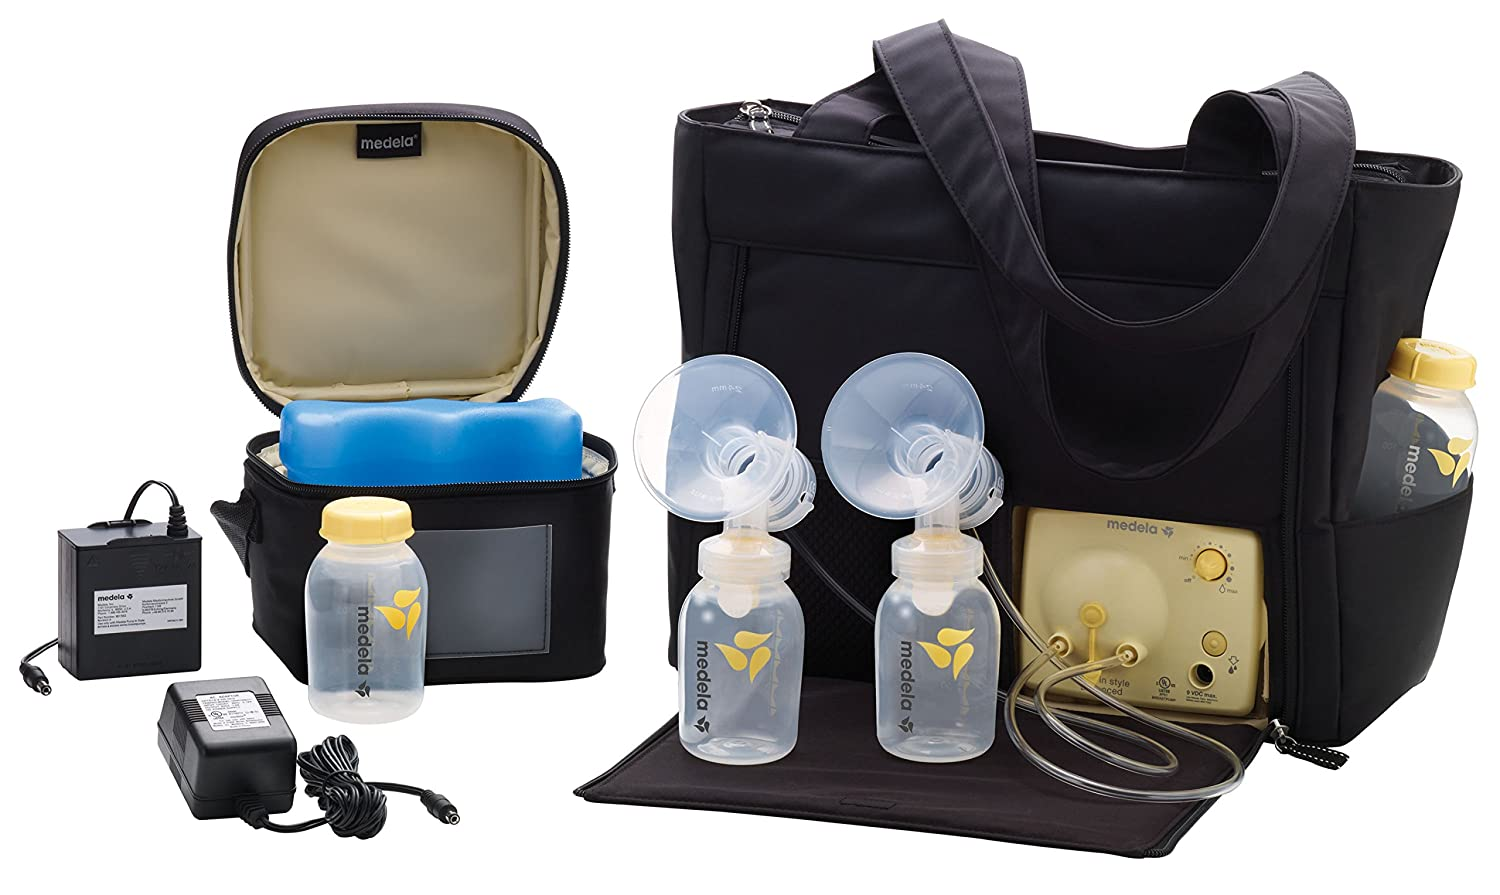 Medela Pump in Style Advanced Double Electric Breast Pump with On the Go Tote, 2-Phase Expression Technology with One-touch Let-down Button, Adjustable Speed and Vacuum 57063